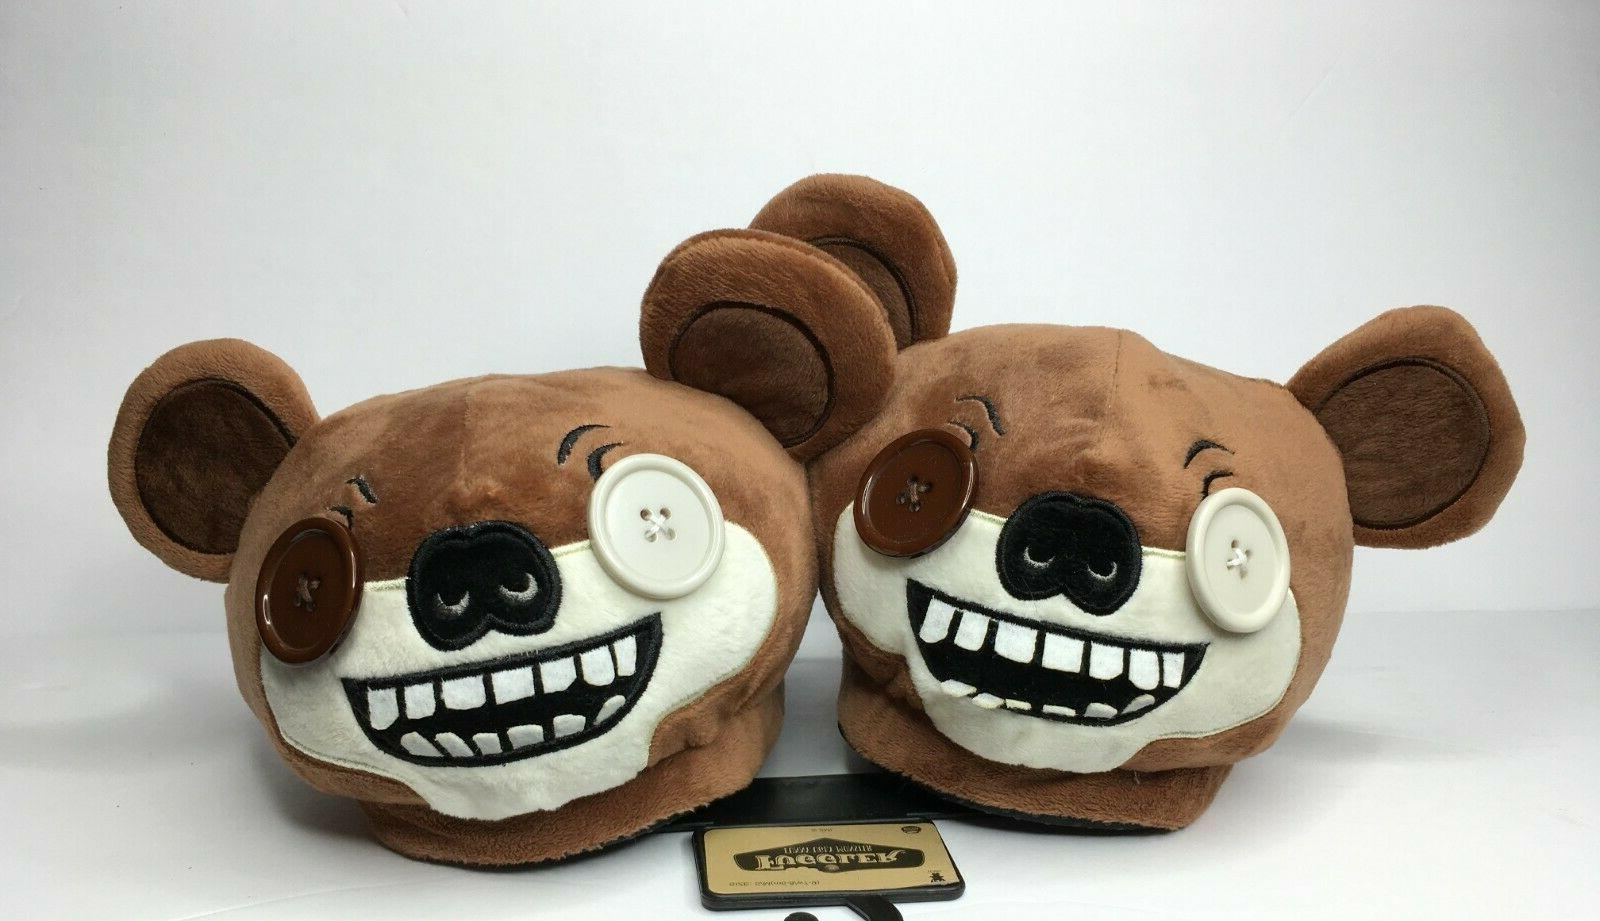 nwt brown funny ugly monster bear slippers